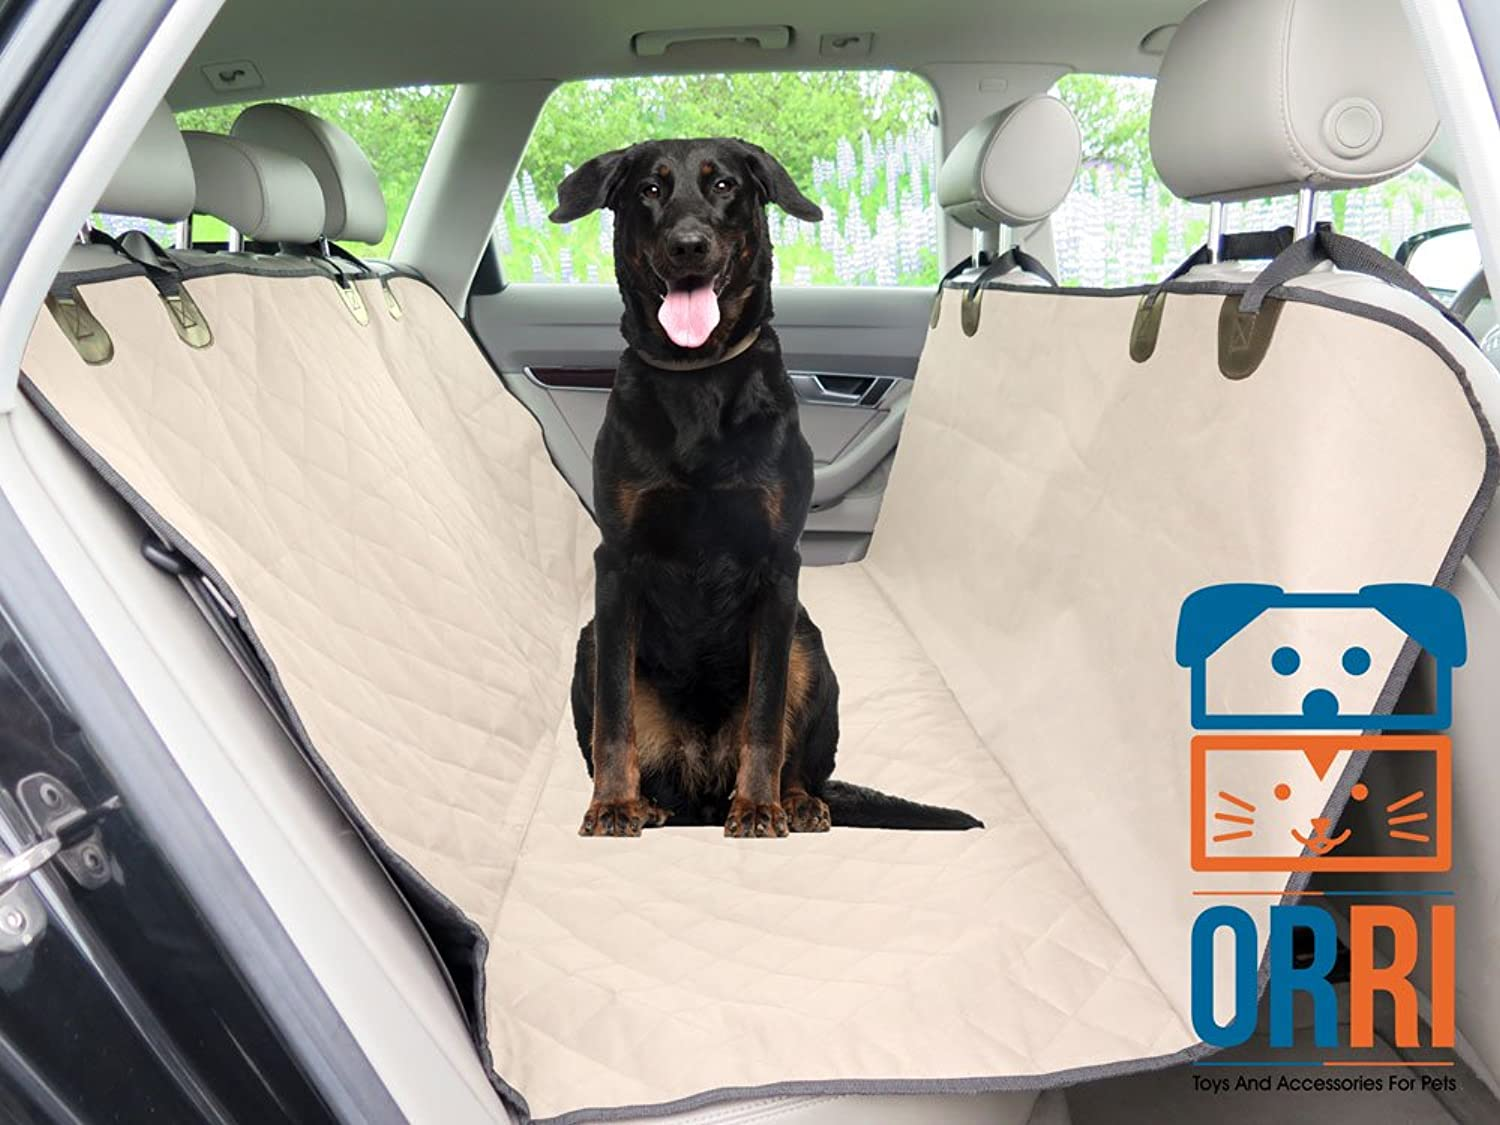 Amazing Dog Car Seat Cover, Rear, Durable, Waterproof, Nonslip Rubber Backing, Seat Anchors, Velcro Seat Belt Openings, Quilted, Padded, Comfortable, Width 54 , Easy to Install, Washable. (Beige)